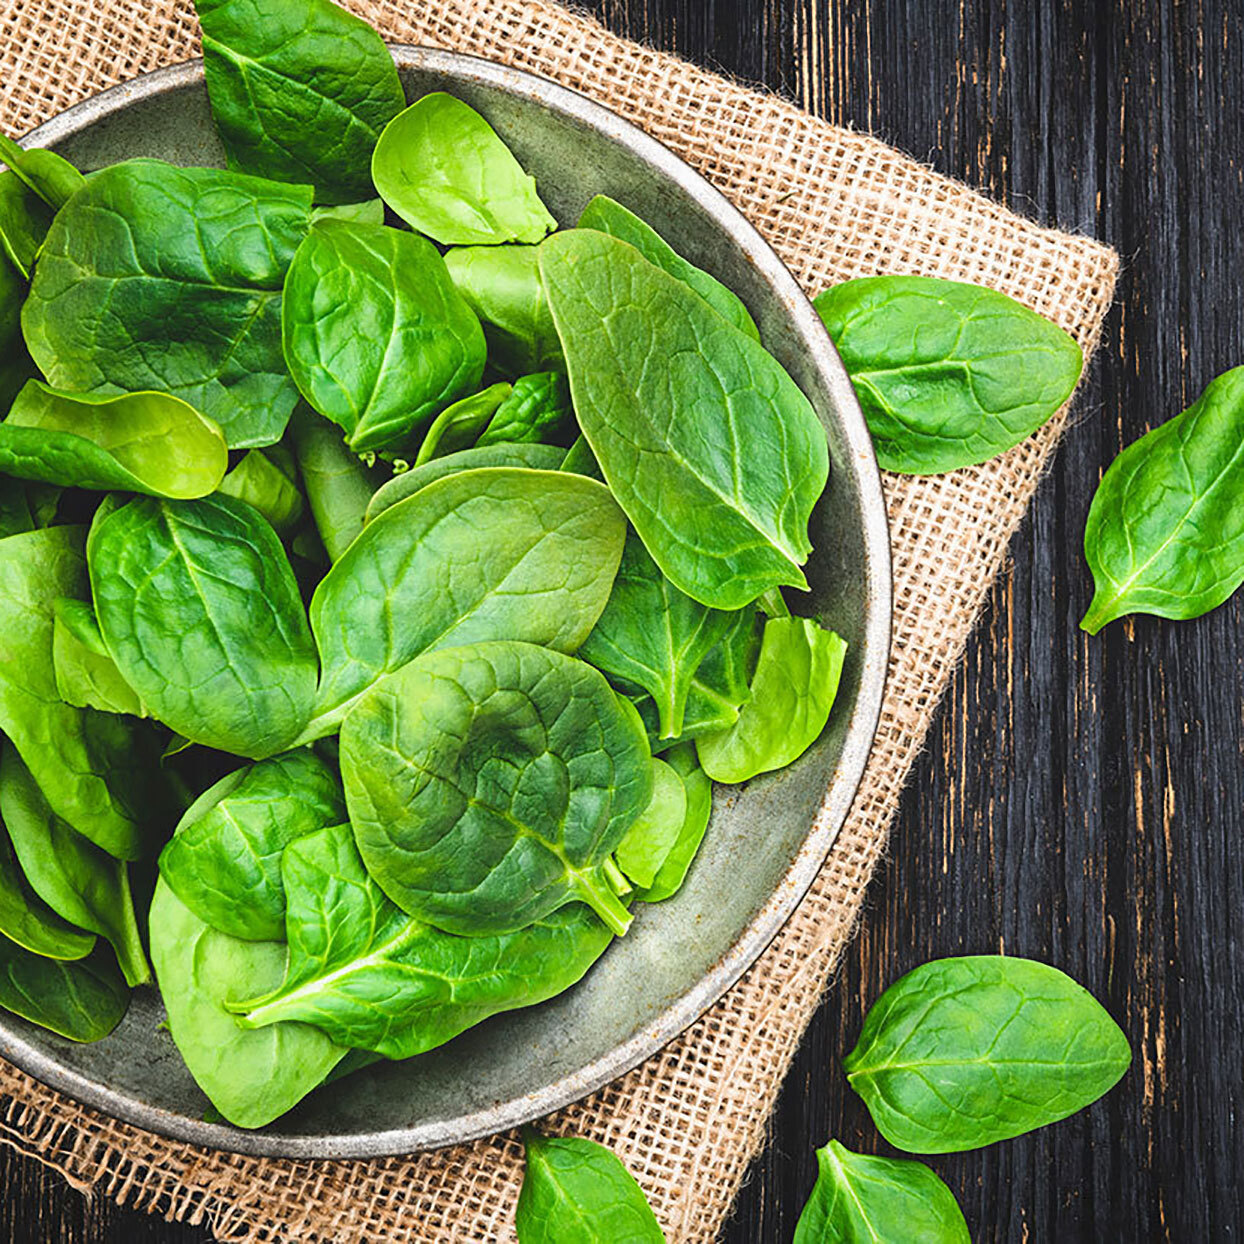 Growing Your Own Spinach Is the Quick & Easy Way to Get Salads All Summer